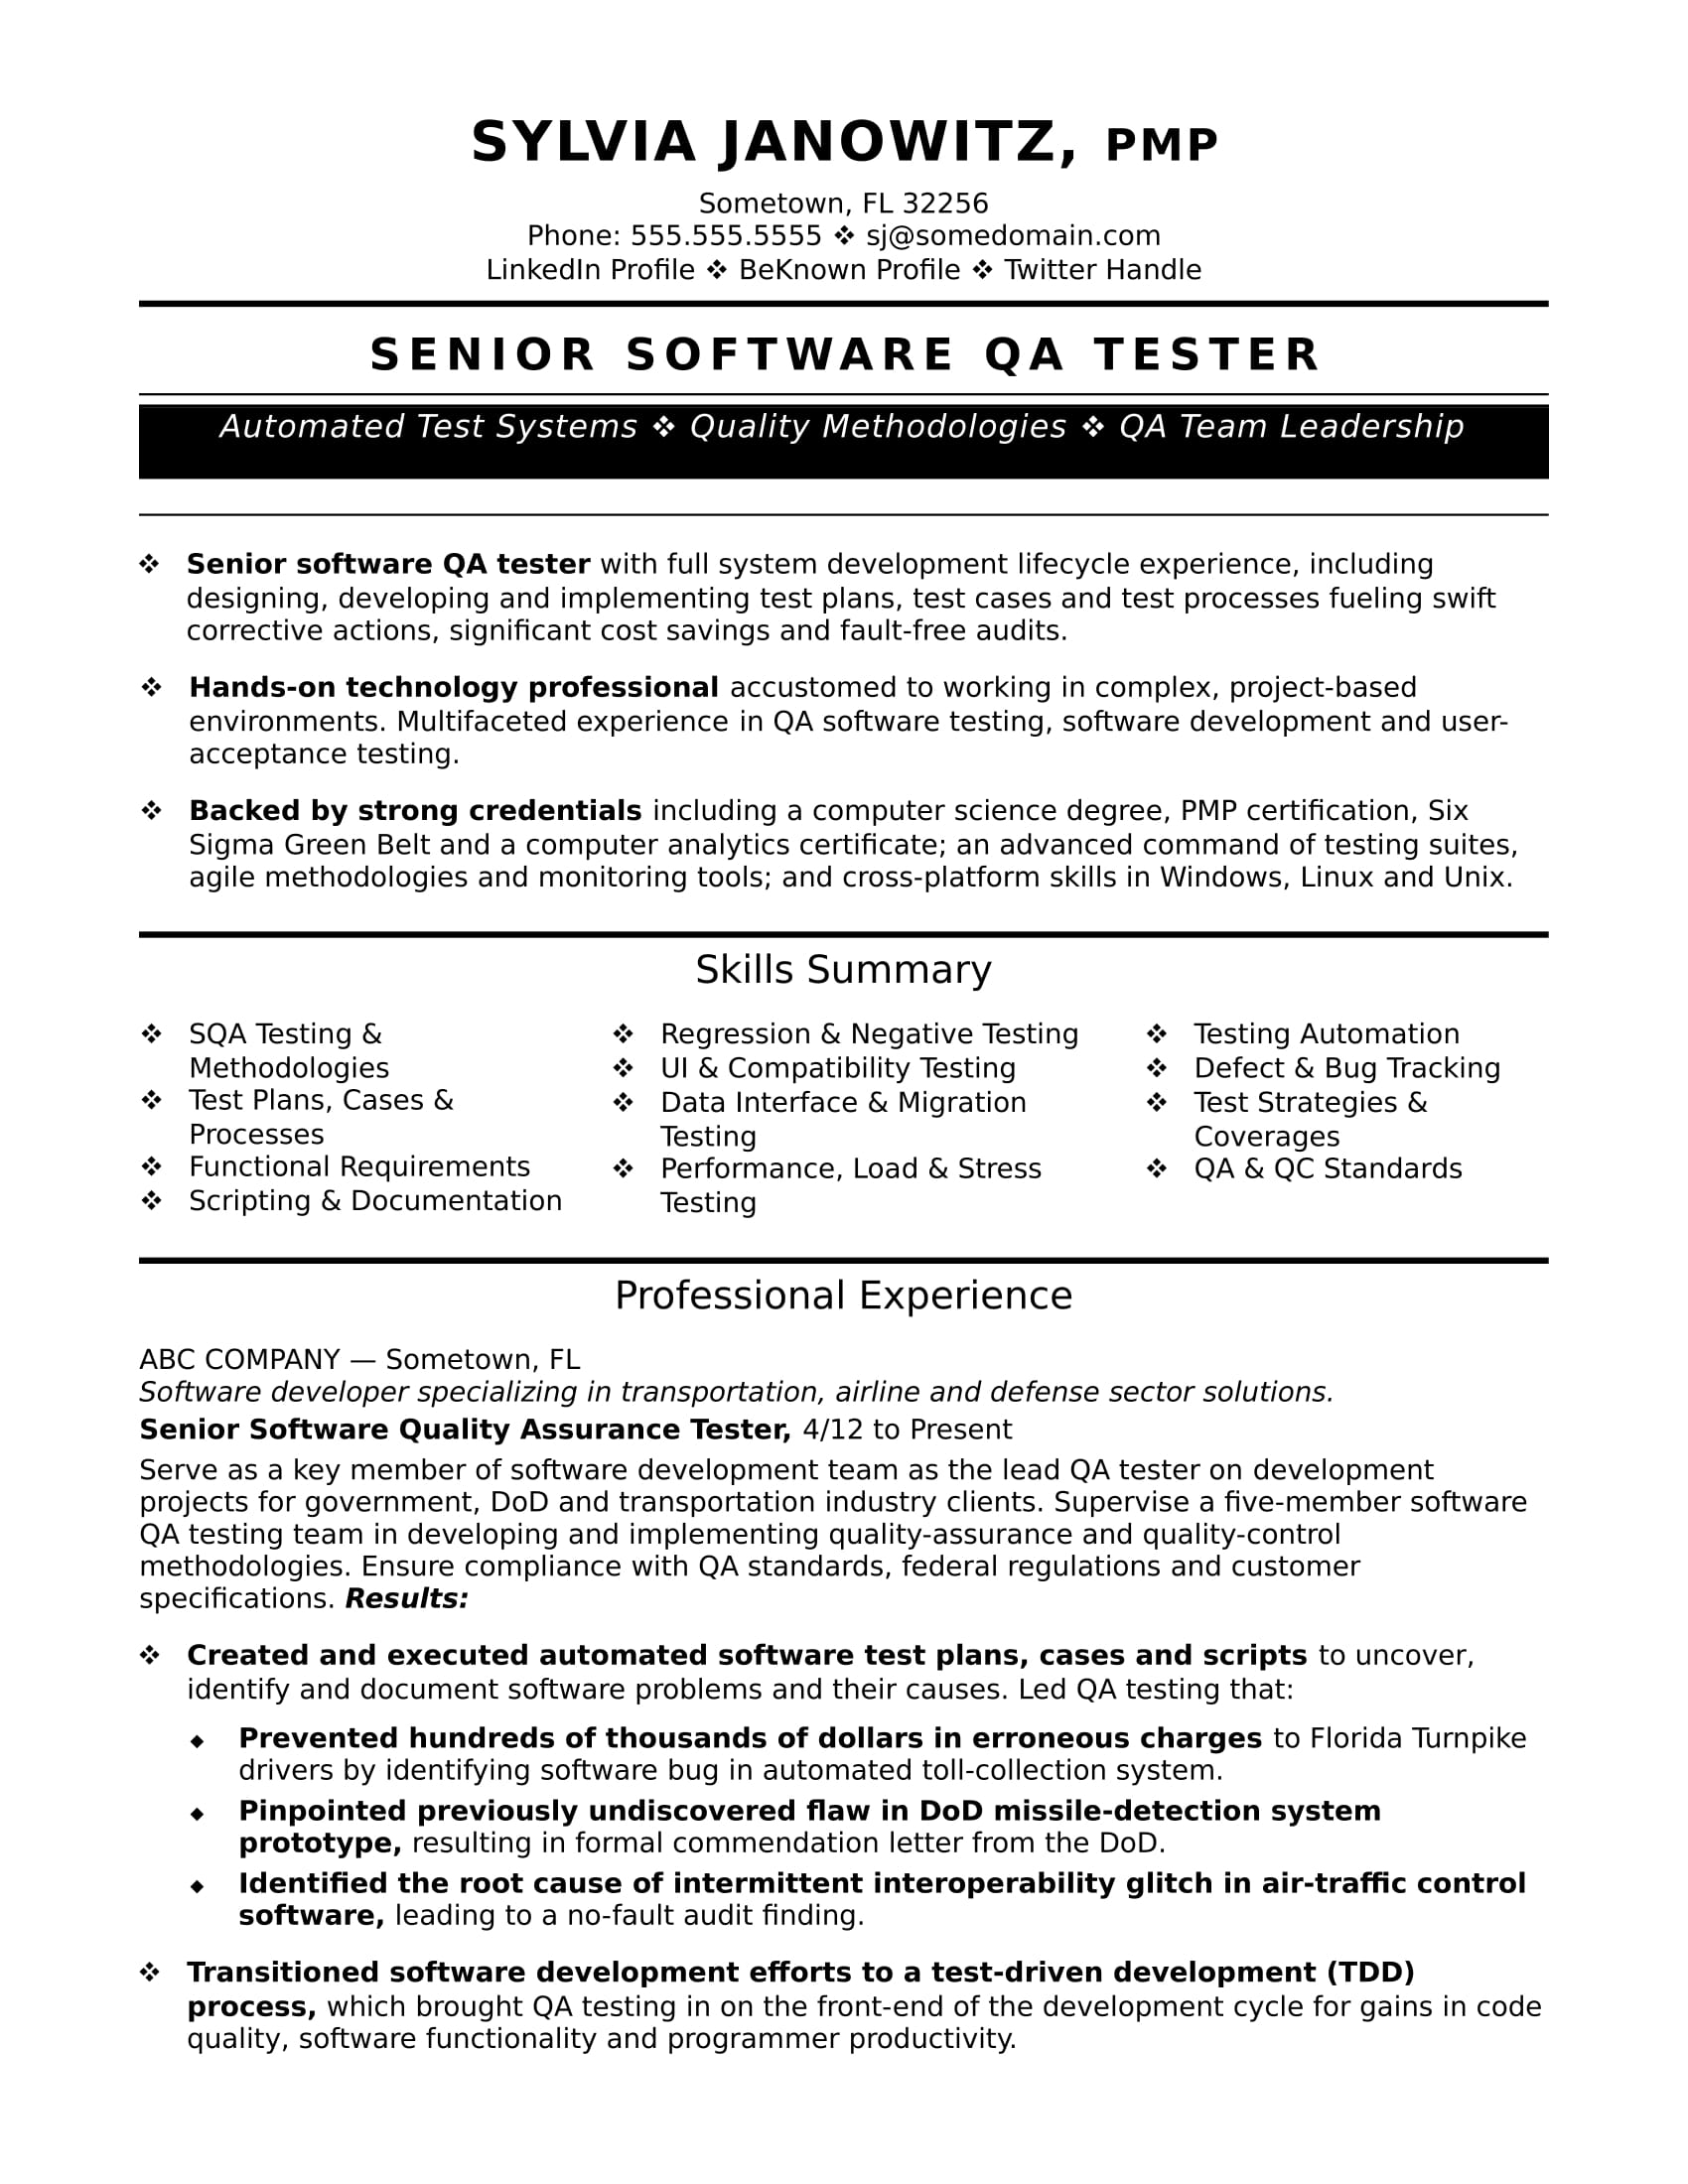 Superior Experienced QA Software Tester Resume Sample Idea Qa Tester Resume Sample